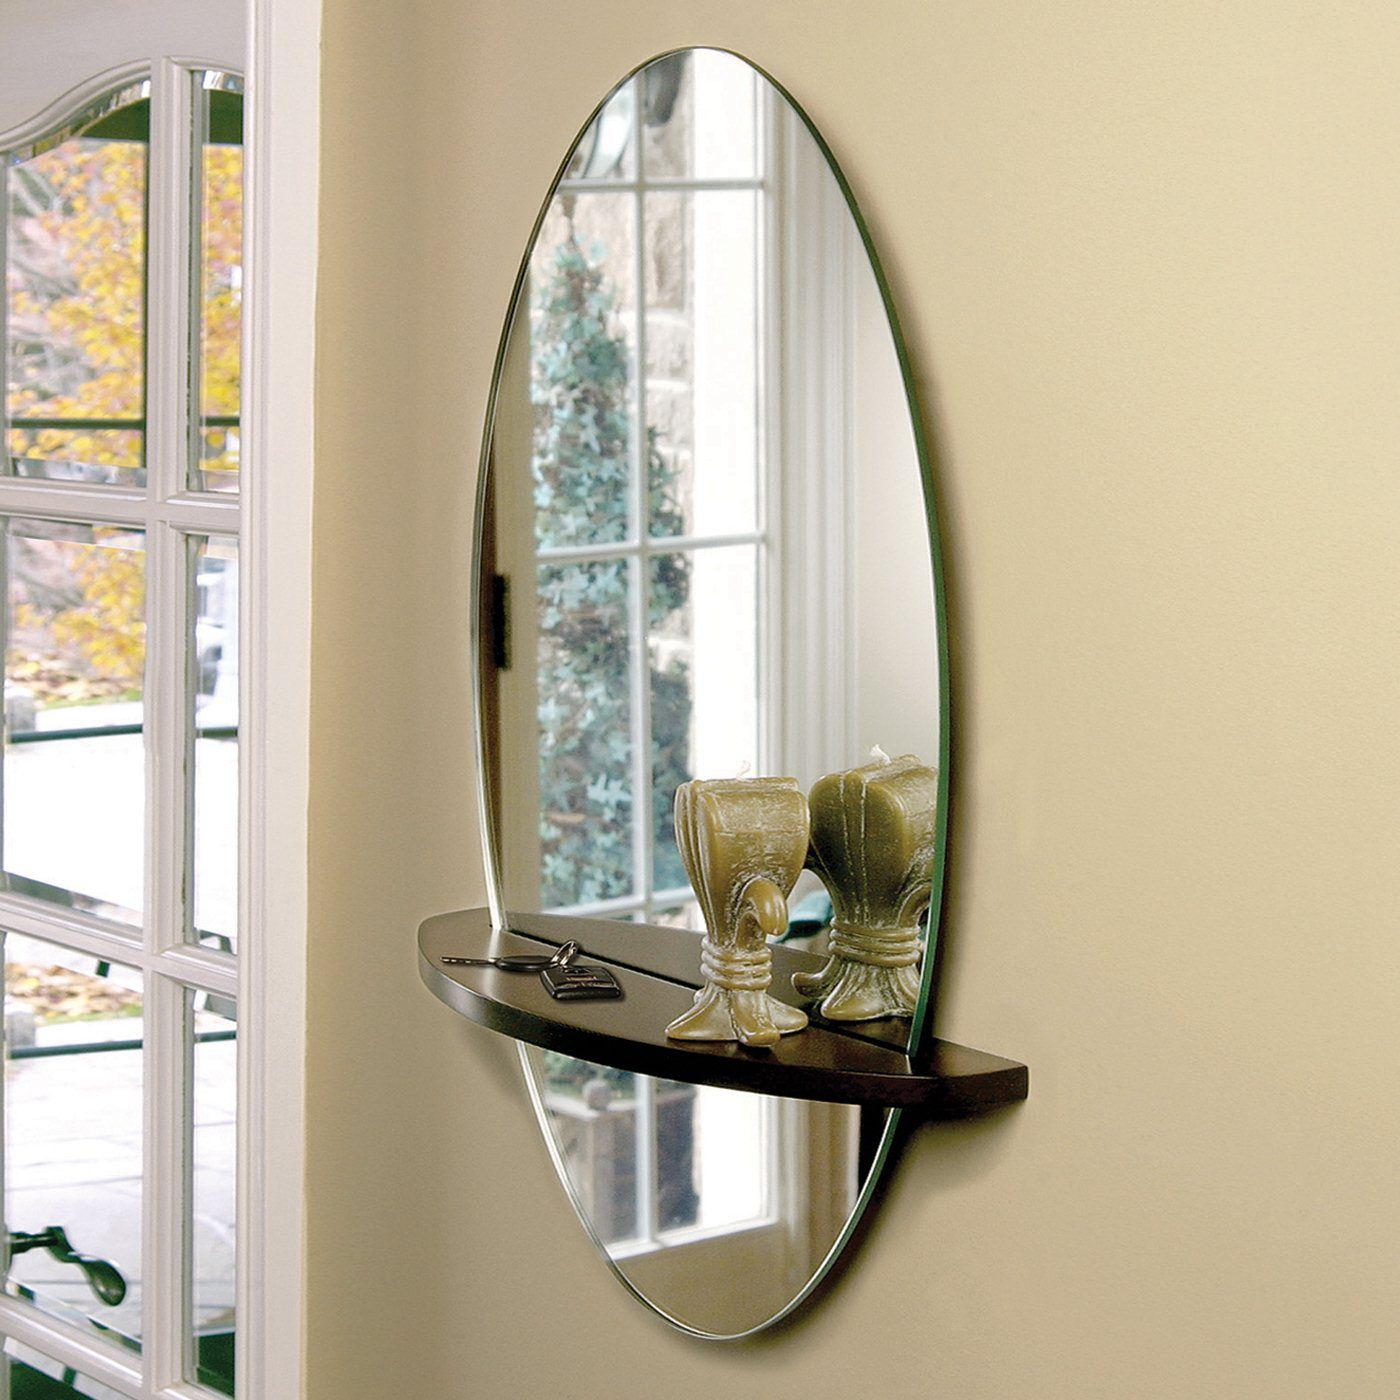 Best Mirror Design Ideas To Inspire Your Home S New Look Home